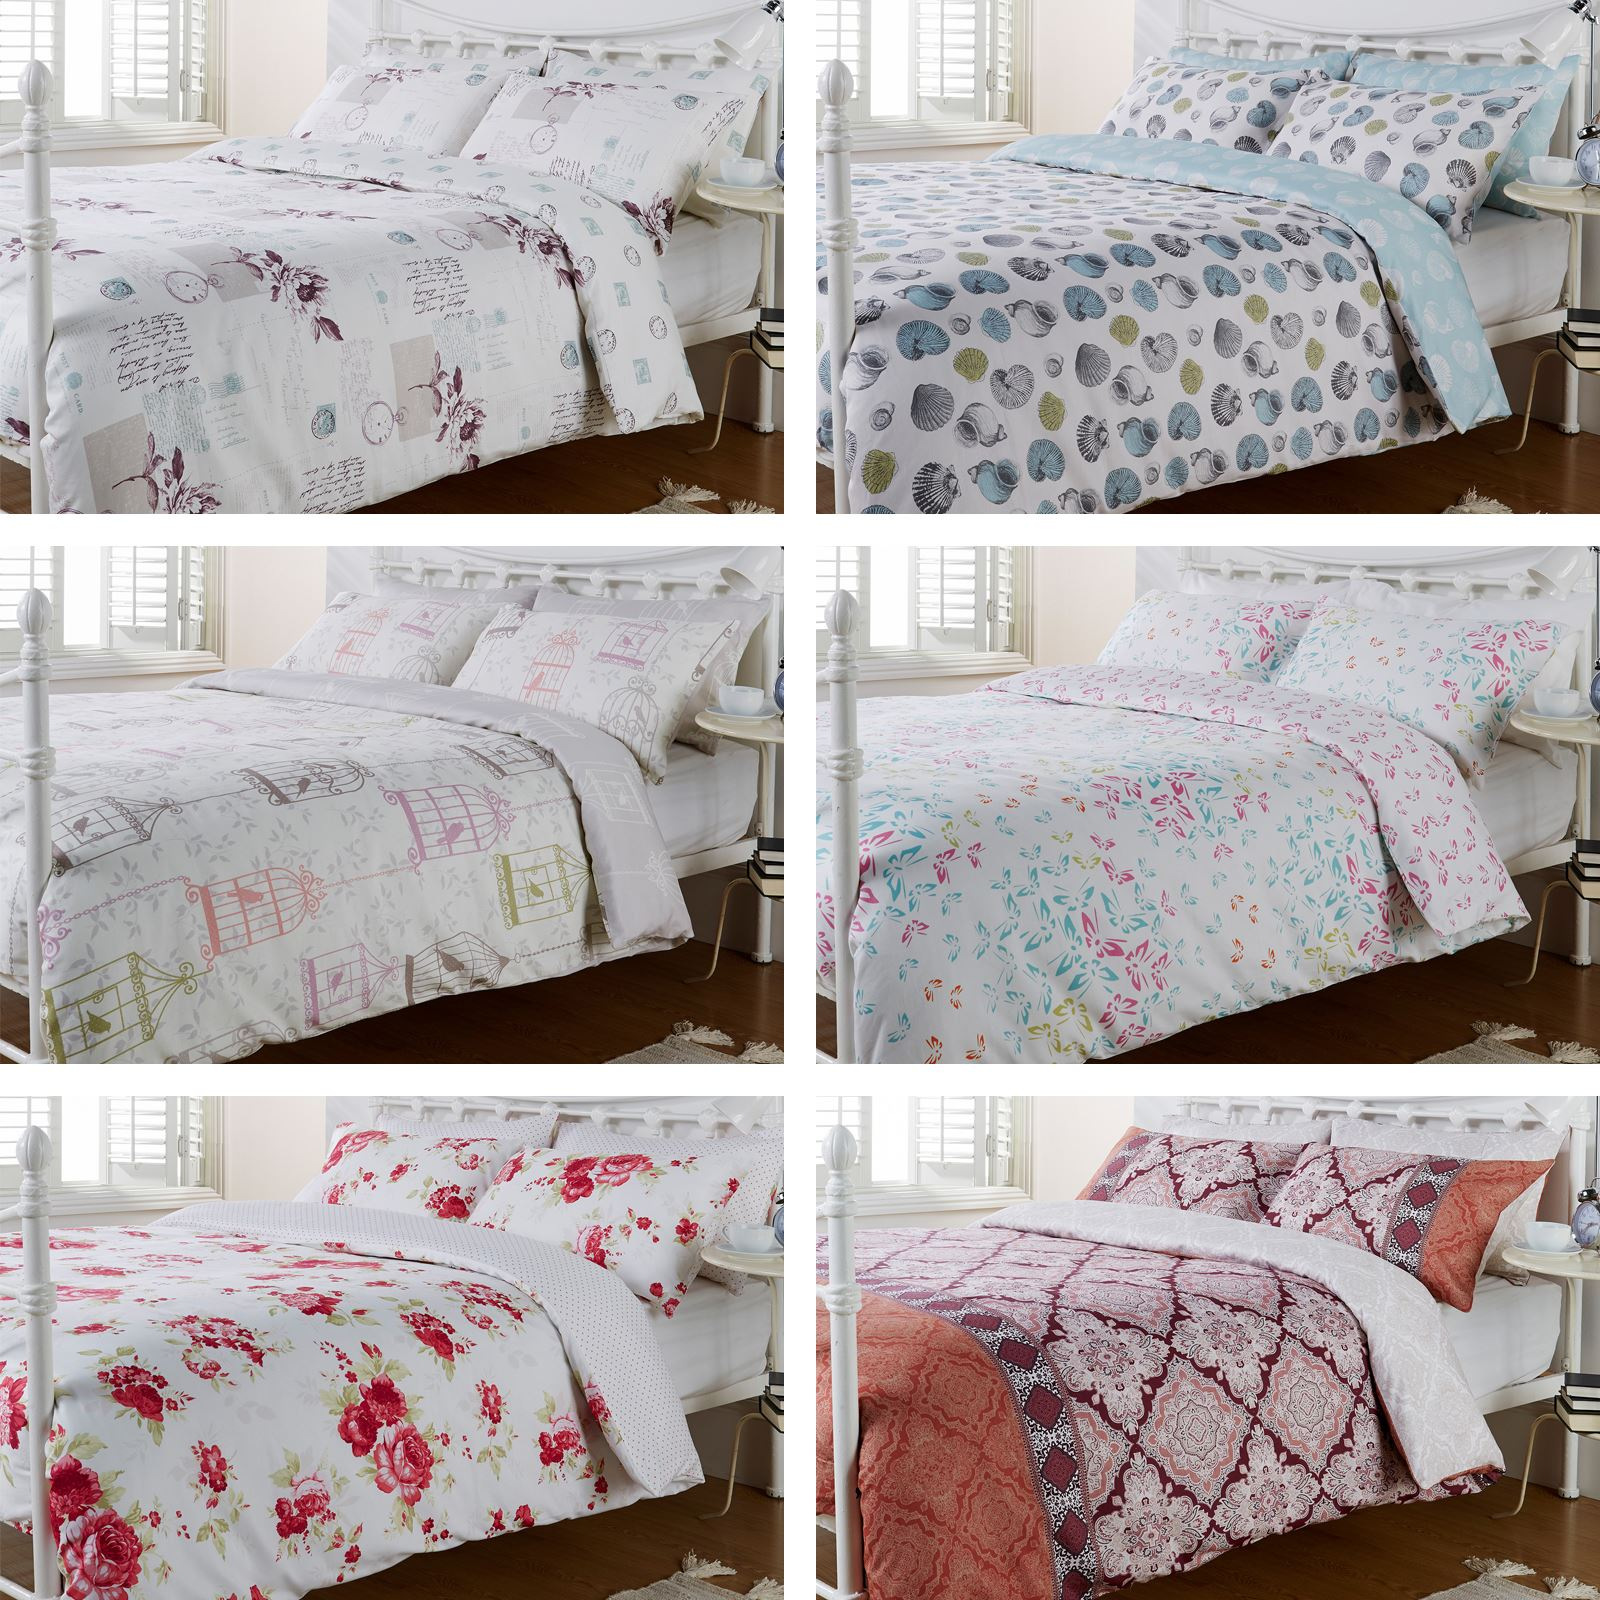 Hummingbird Bed Linen Part - 15: Cotton Is A Popular Choice For Your Bed Linen As It Feels Soft And Is  Long-lasting. Not Only Is It Comfortable To Sleep In But It Has Natural  Breathing ...